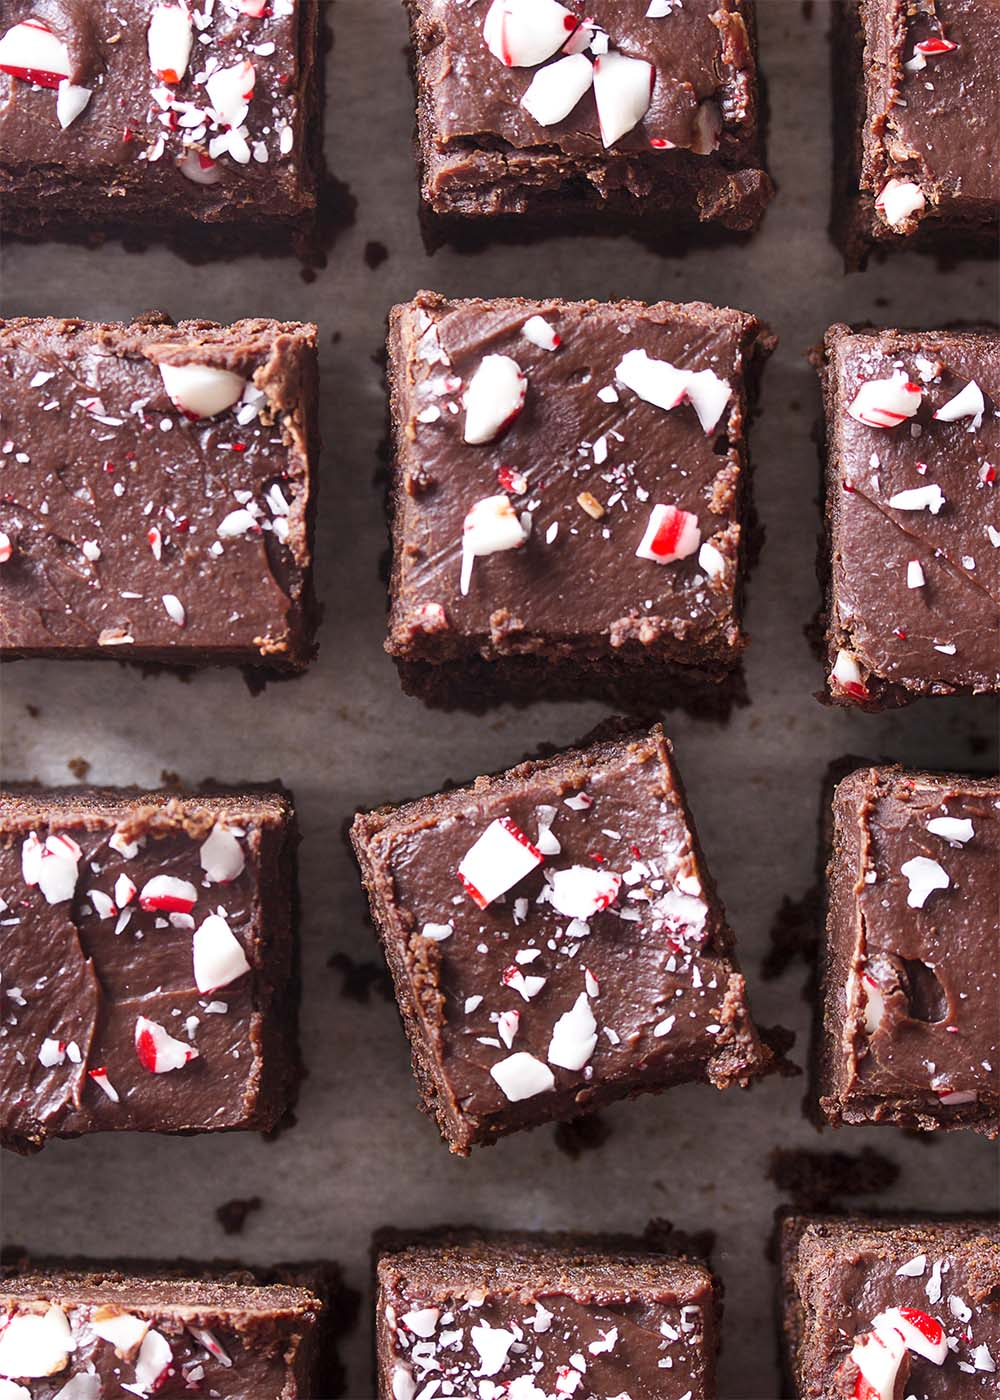 Top view of a grid of brownies sprinkled with crushed candy canes.